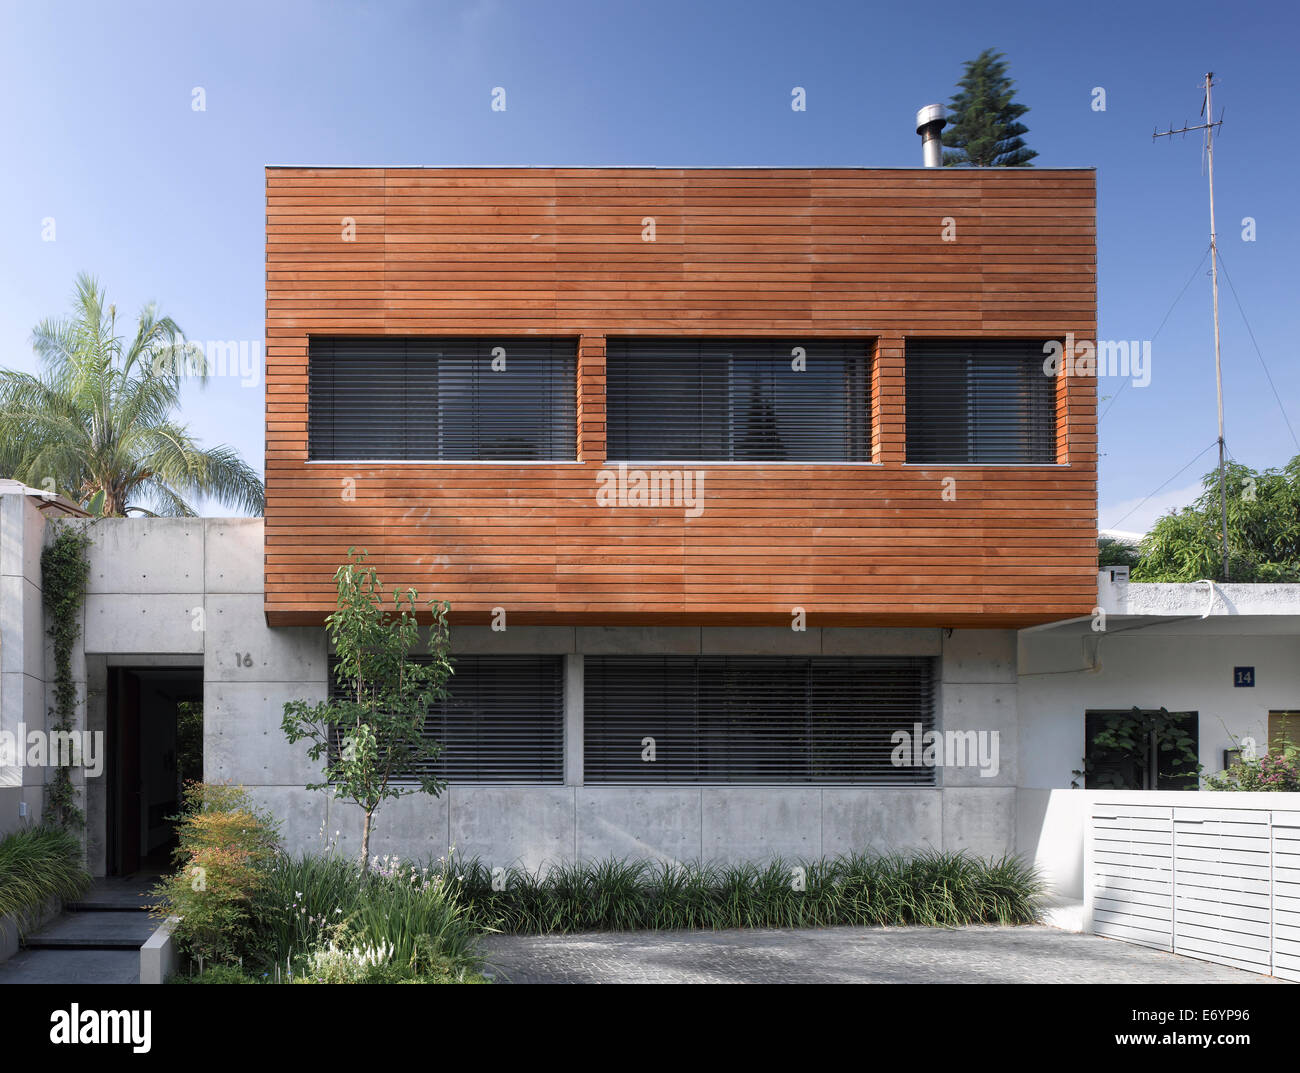 Wood and stone facade of s house israel middle east for Stone facade house